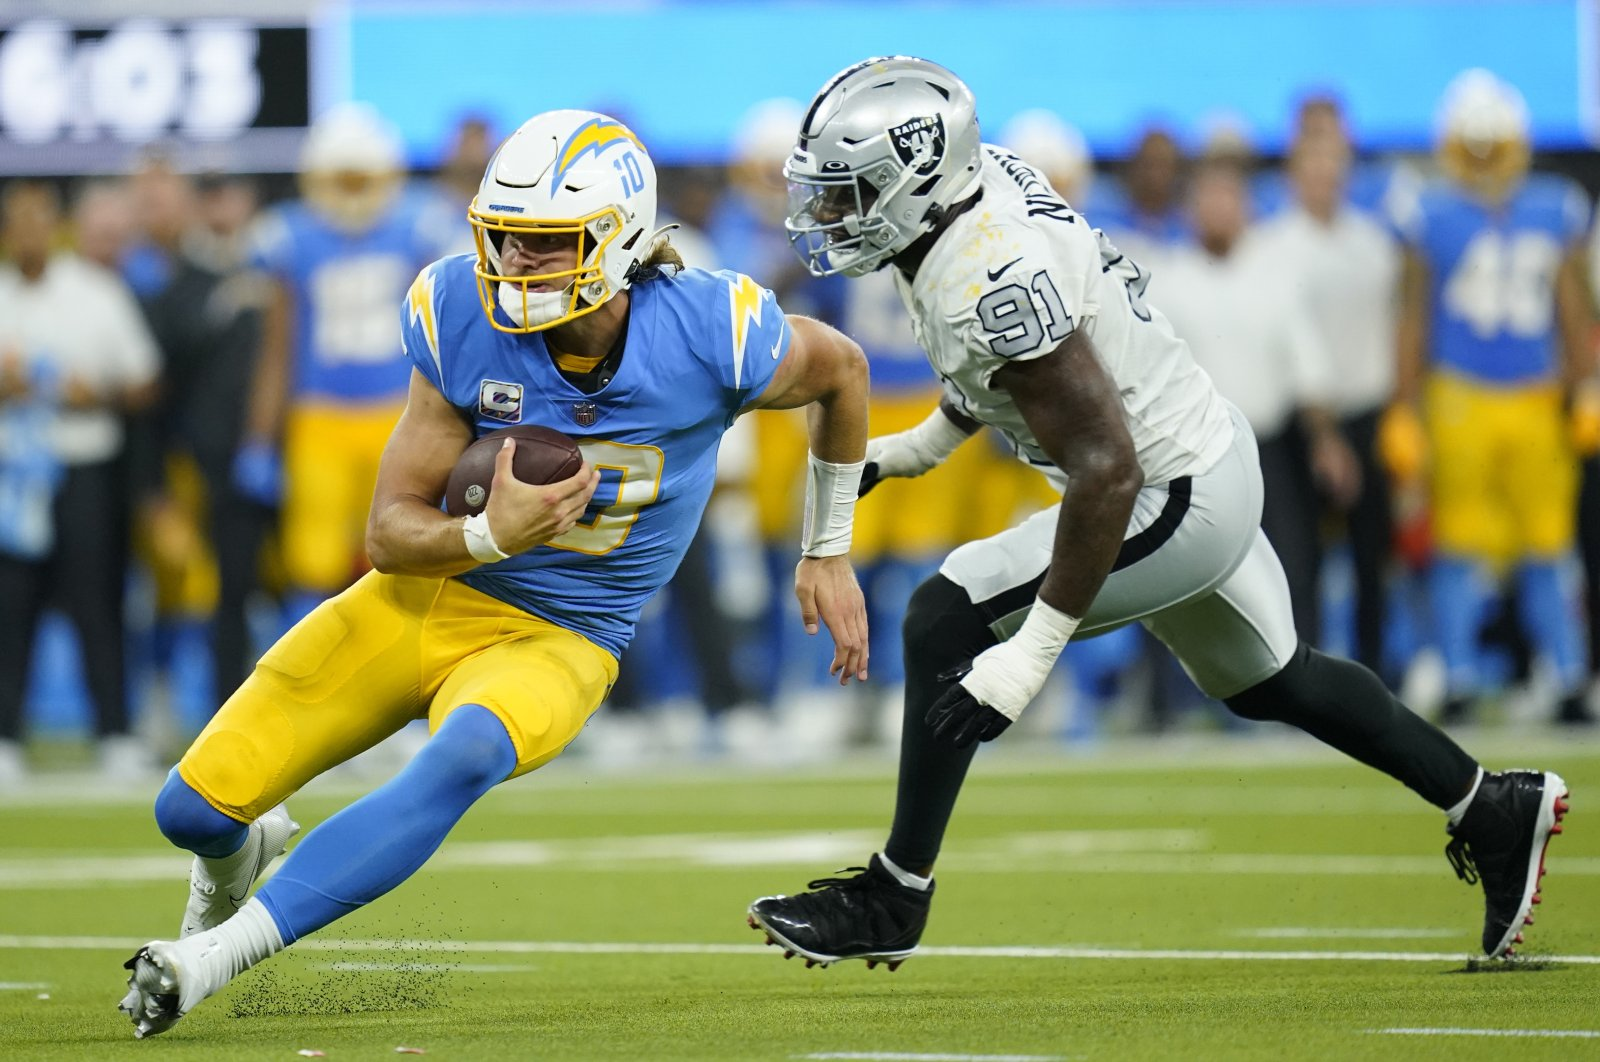 Los Angeles Chargers quarterback Justin Herbert runs with the ball as Las Vegas Raiders defensive end Yannick Ngakoue defends during the second half of an NFL football game, Inglewood, California, U.S., Oct. 4, 2021. (AP Photo)